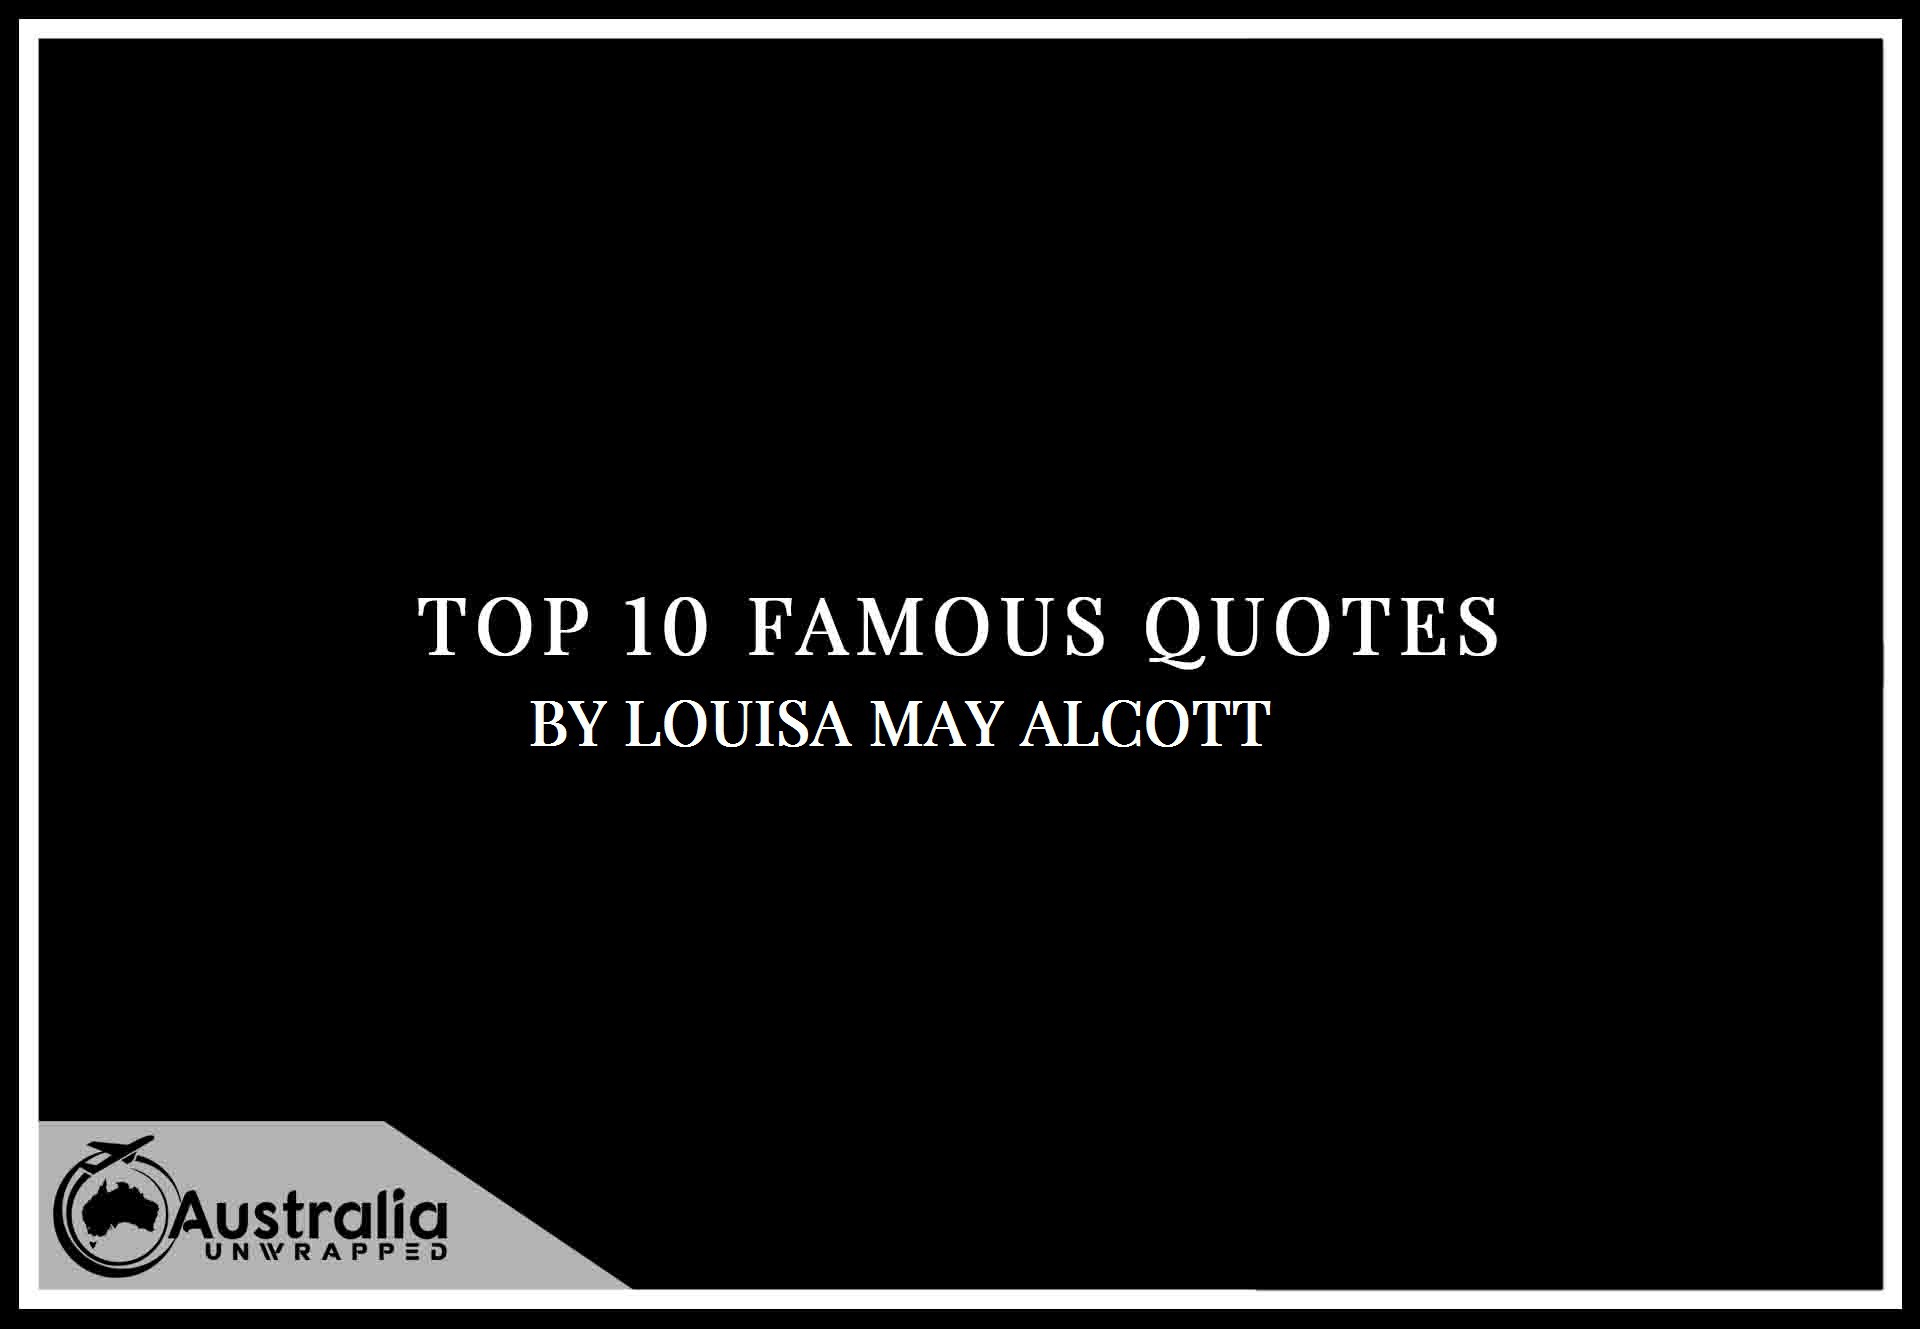 Louisa May Alcott's Top 10 Popular and Famous Quotes